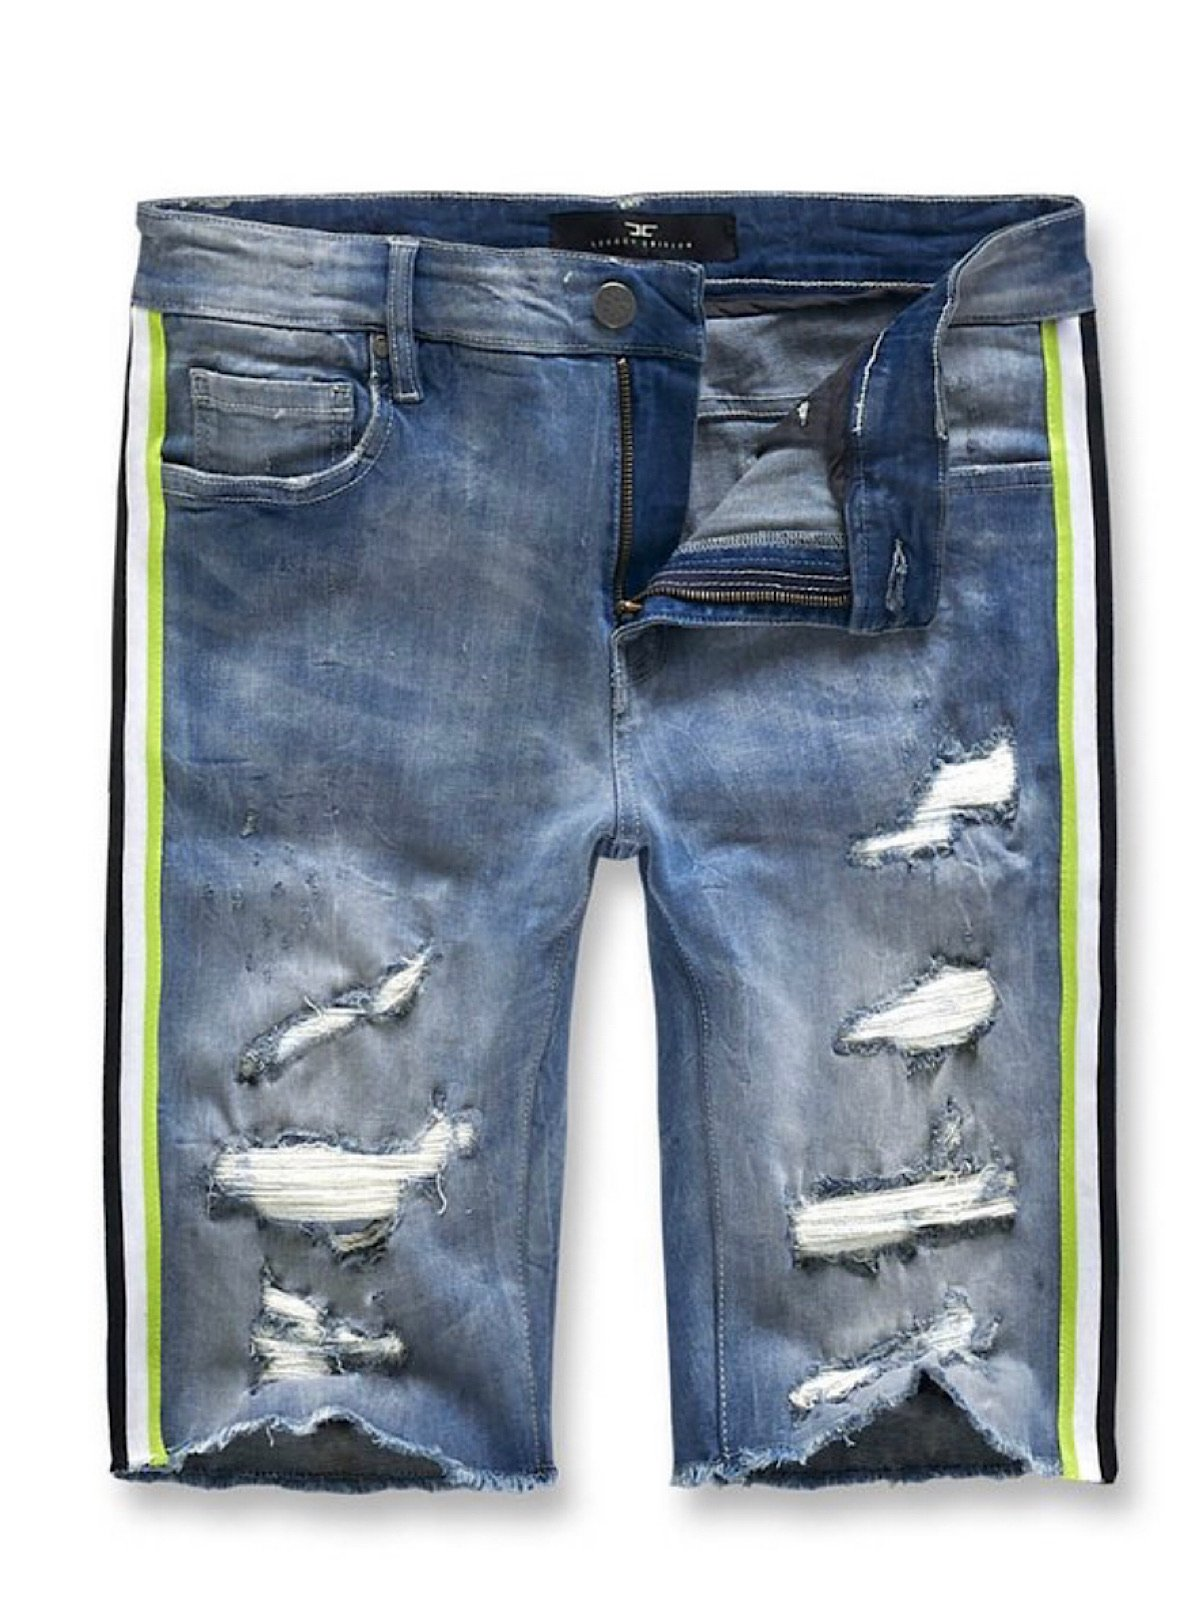 Jordan Craig Shorts - Studio Dark Blue And Lime - J3157S